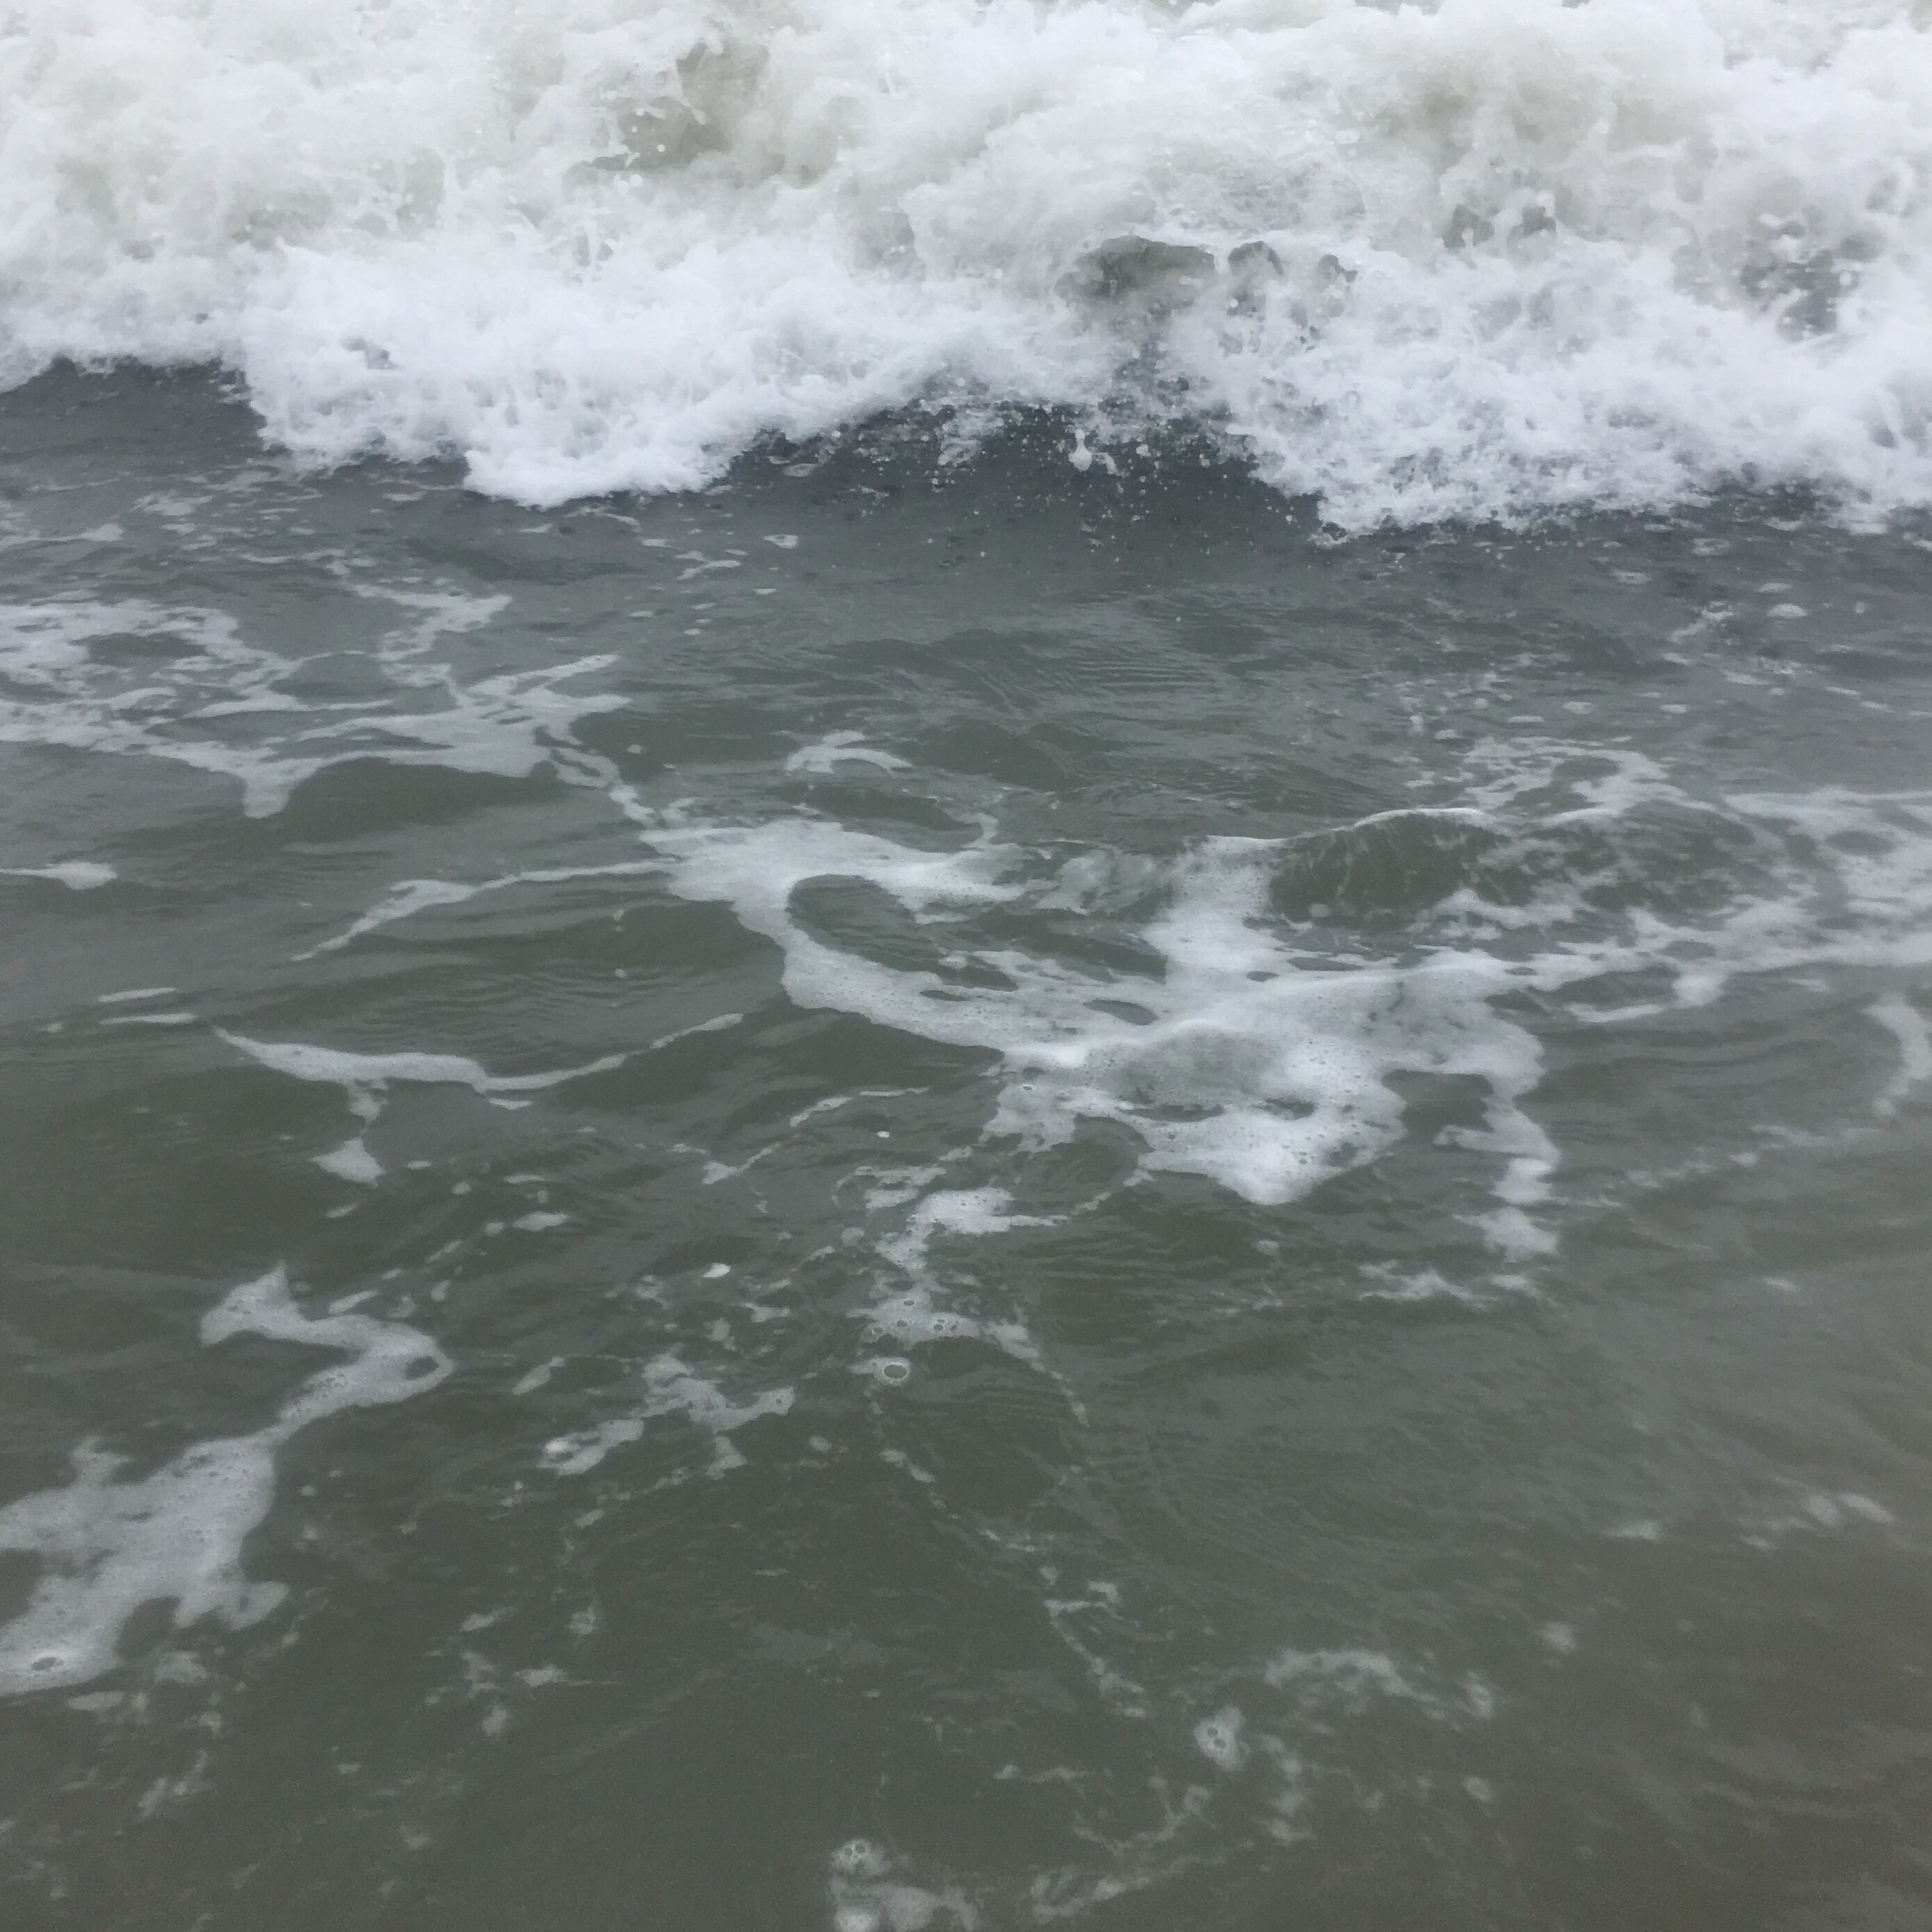 water, wave, no people, nature, day, sea, beauty in nature, outdoors, close-up